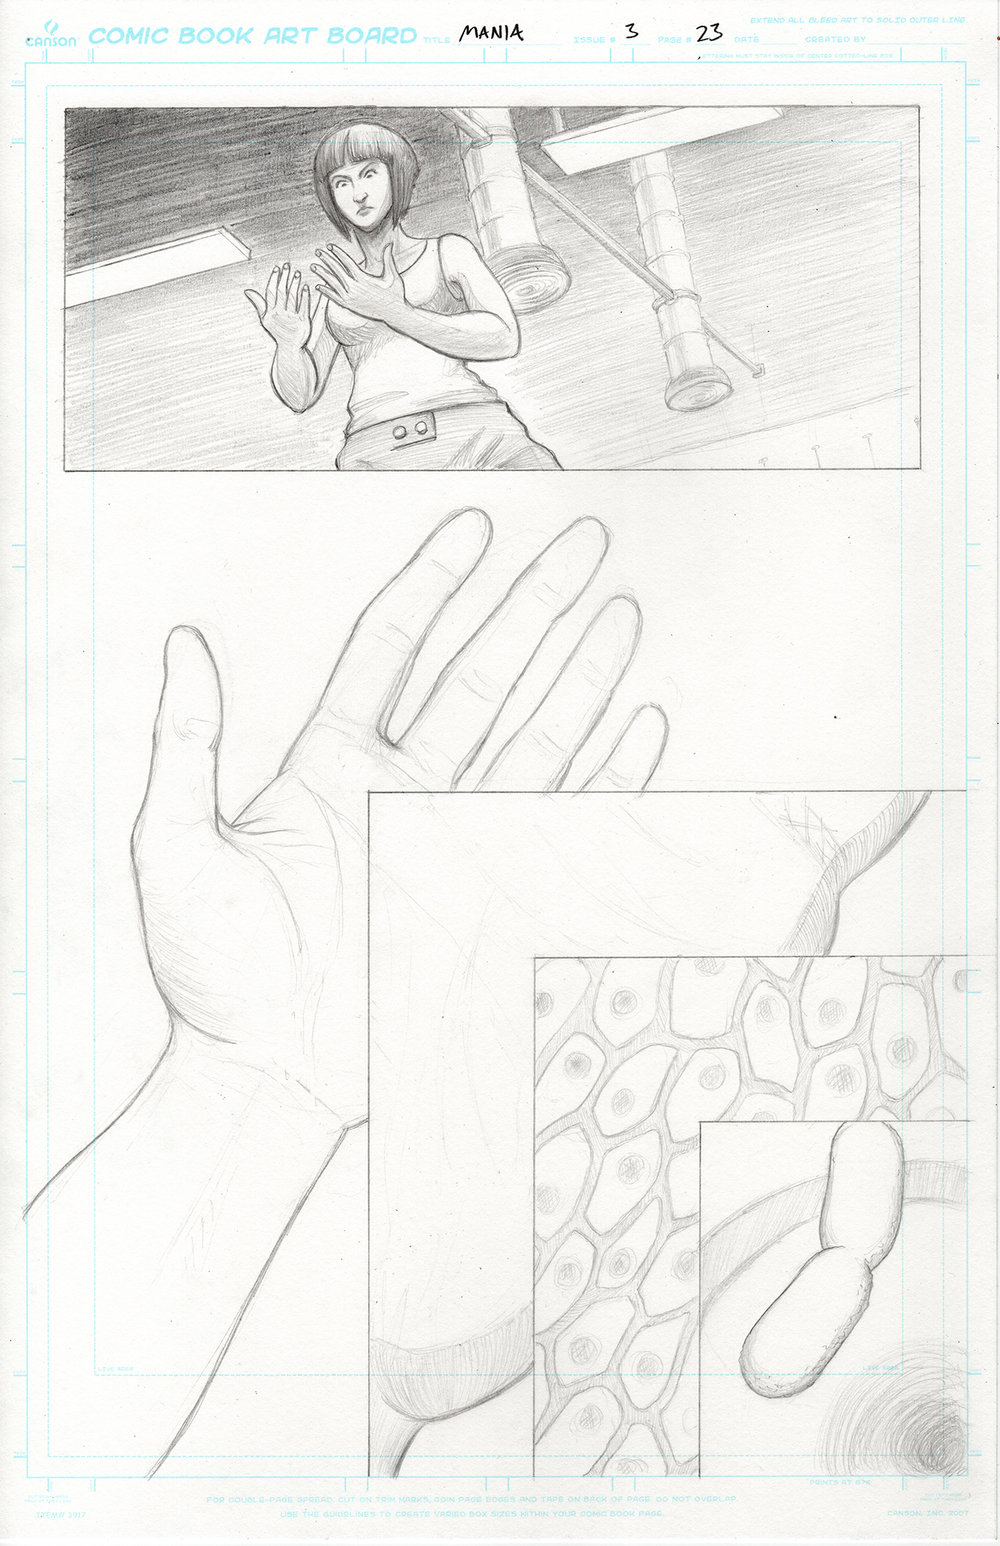 MANIA Issue 3, Page 23